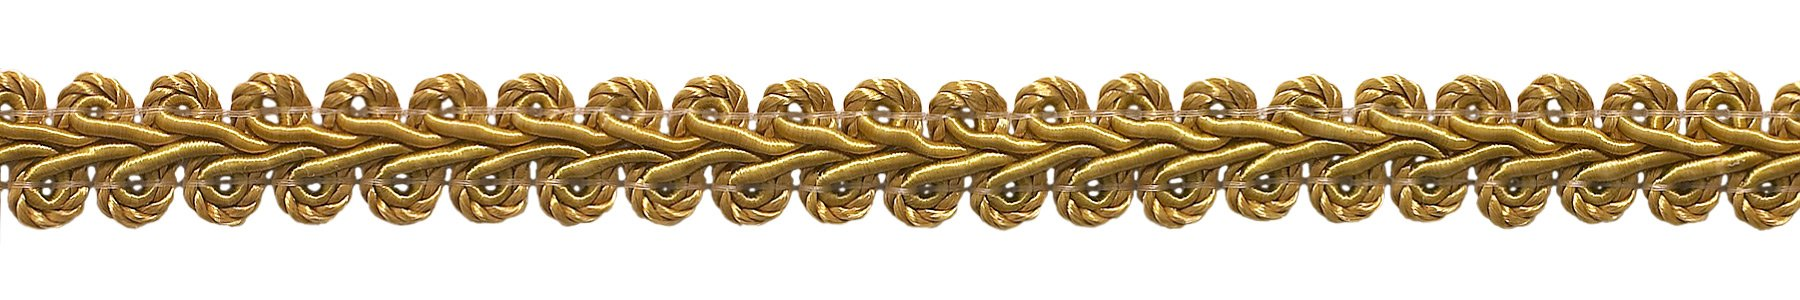 DÉCOPRO 54 Yard Value Pack of 1/2 inch Basic Trim French Gimp Braid, Style# FGS Color: Gold - C4 (164 Ft / 50 Meters) by DÉCOPRO